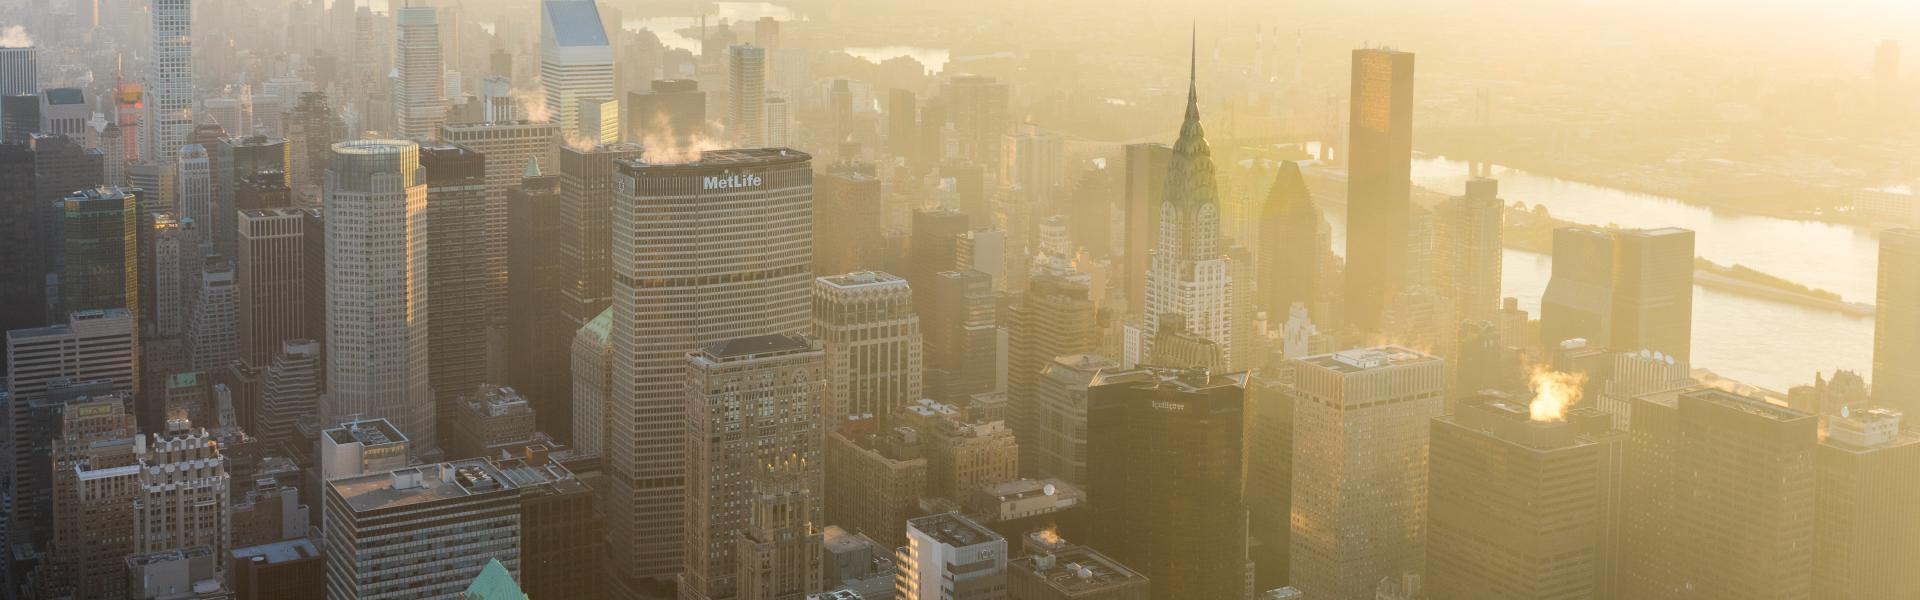 Skyline, Empire State Building, Sunrise